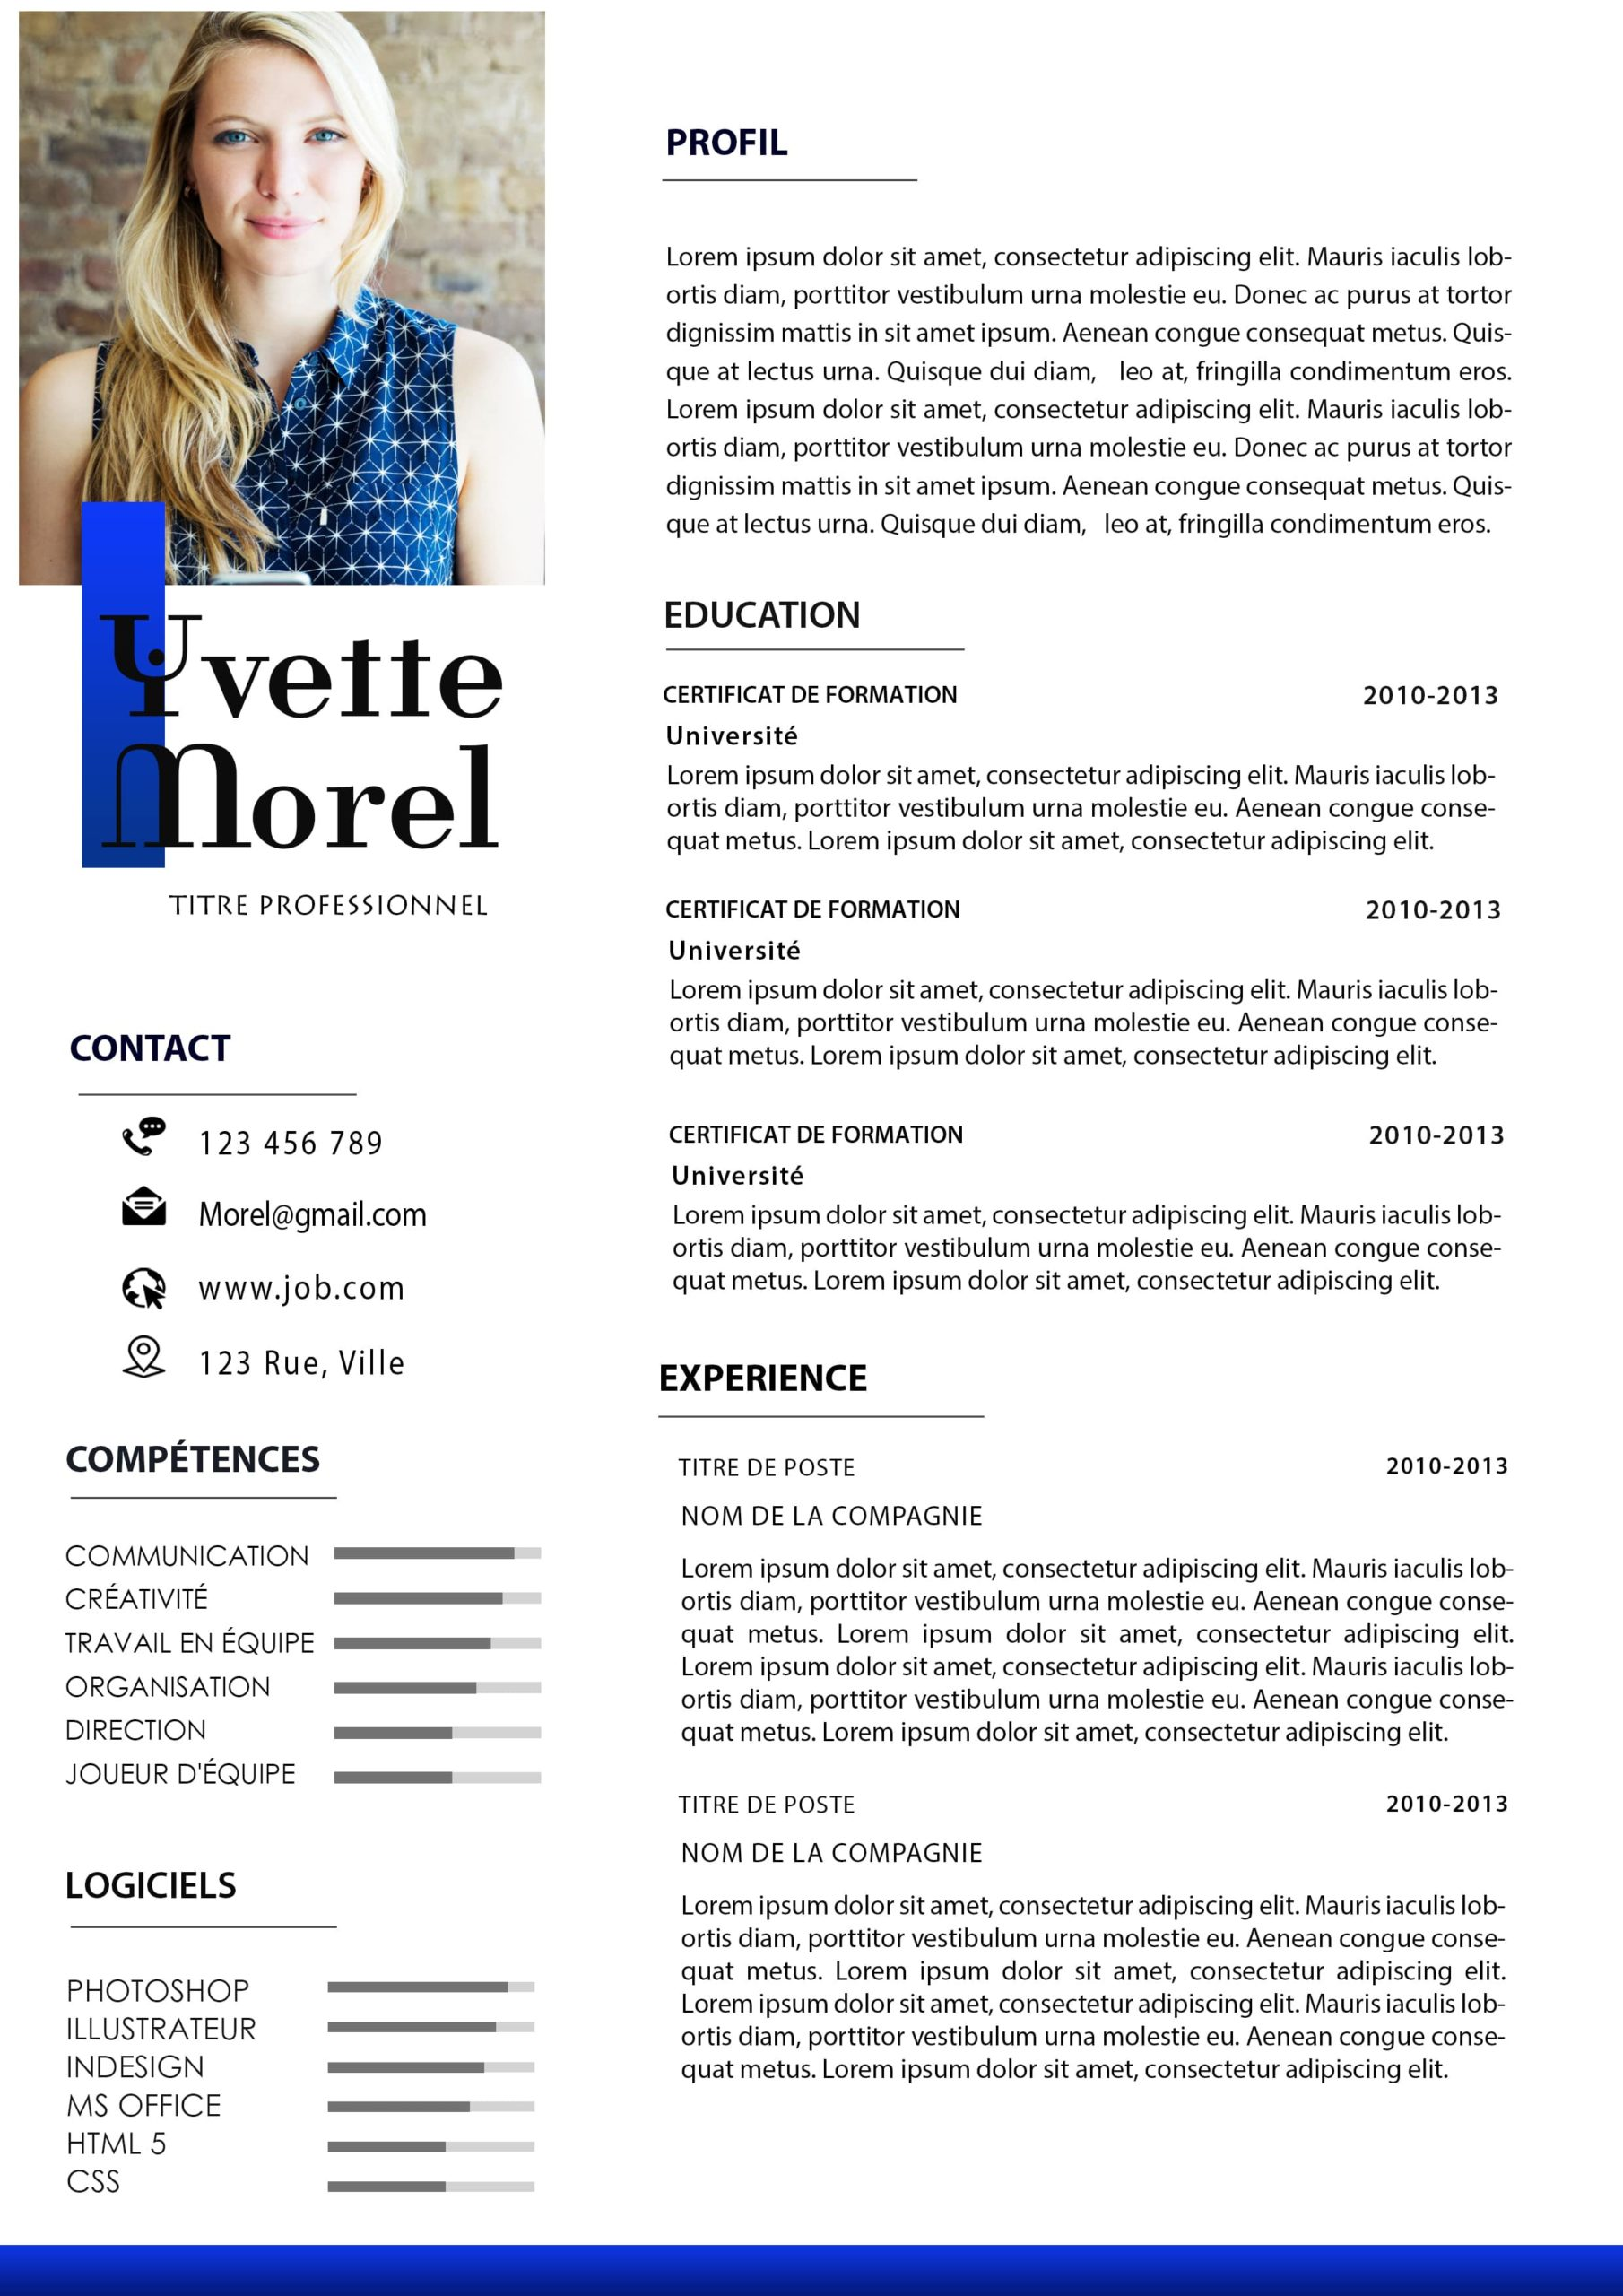 EXEMPLE DE CV SIMPLE DE 02 PAGES